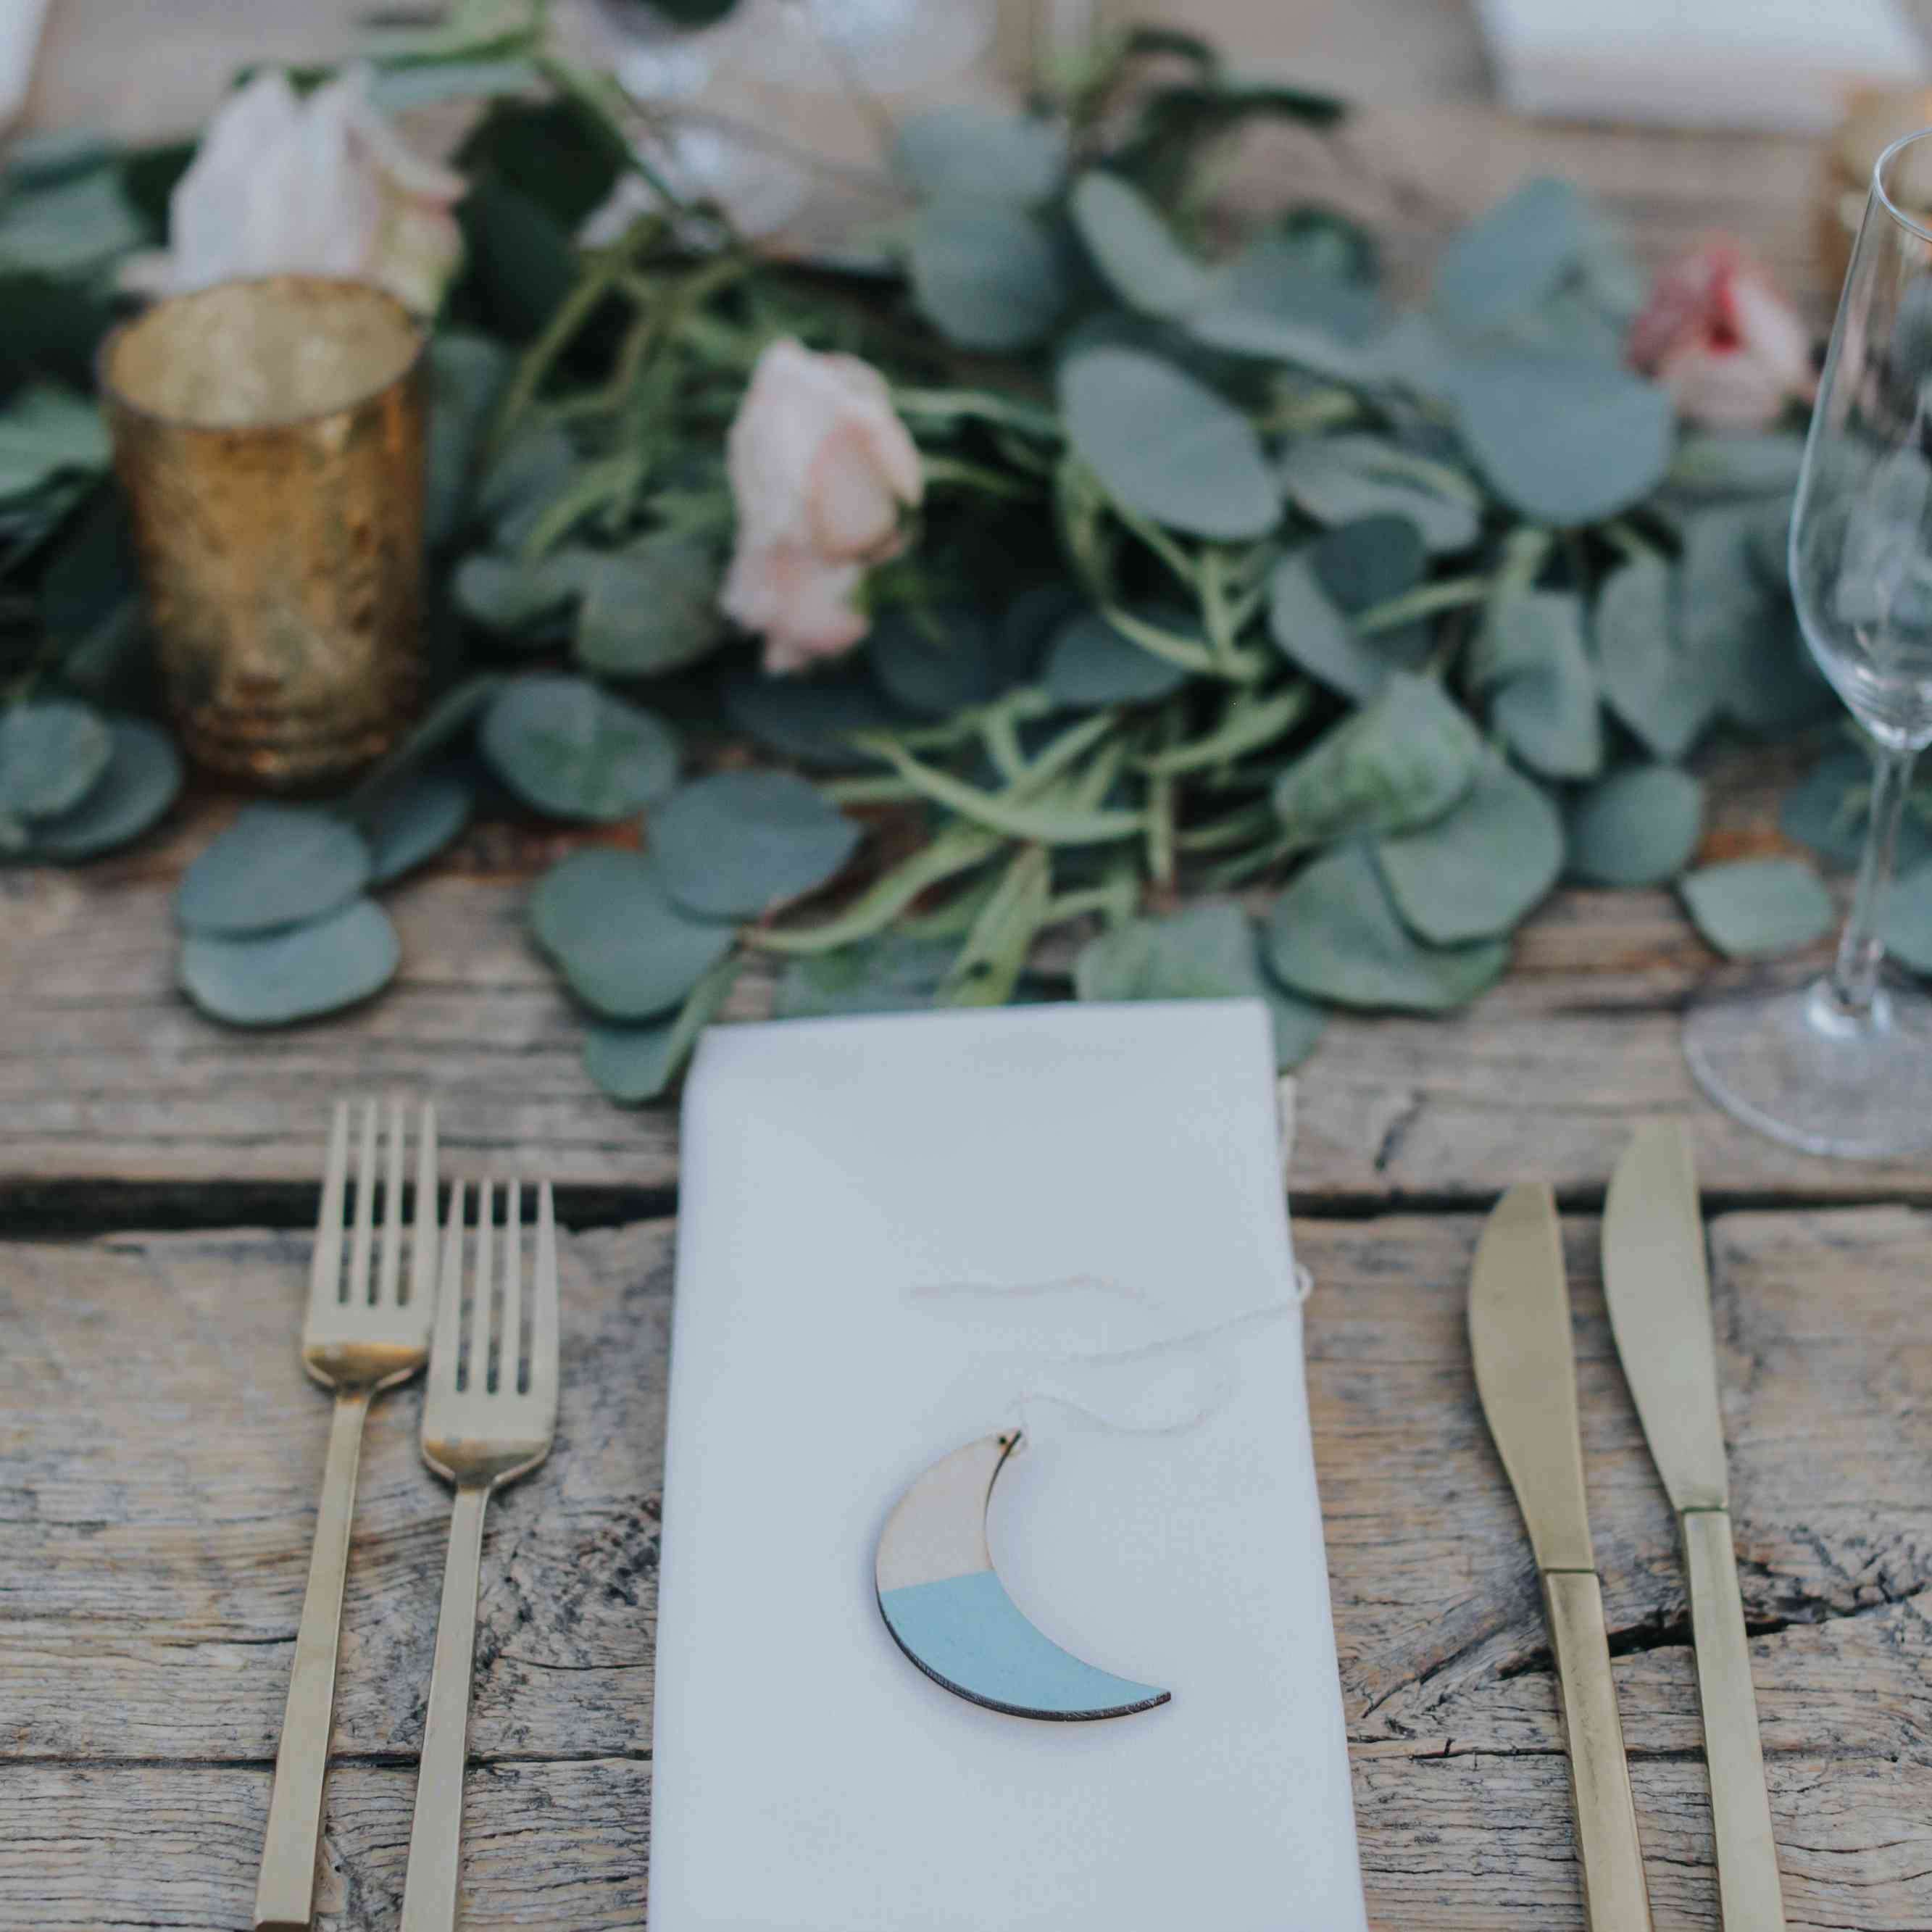 Crescent moon decor for tables